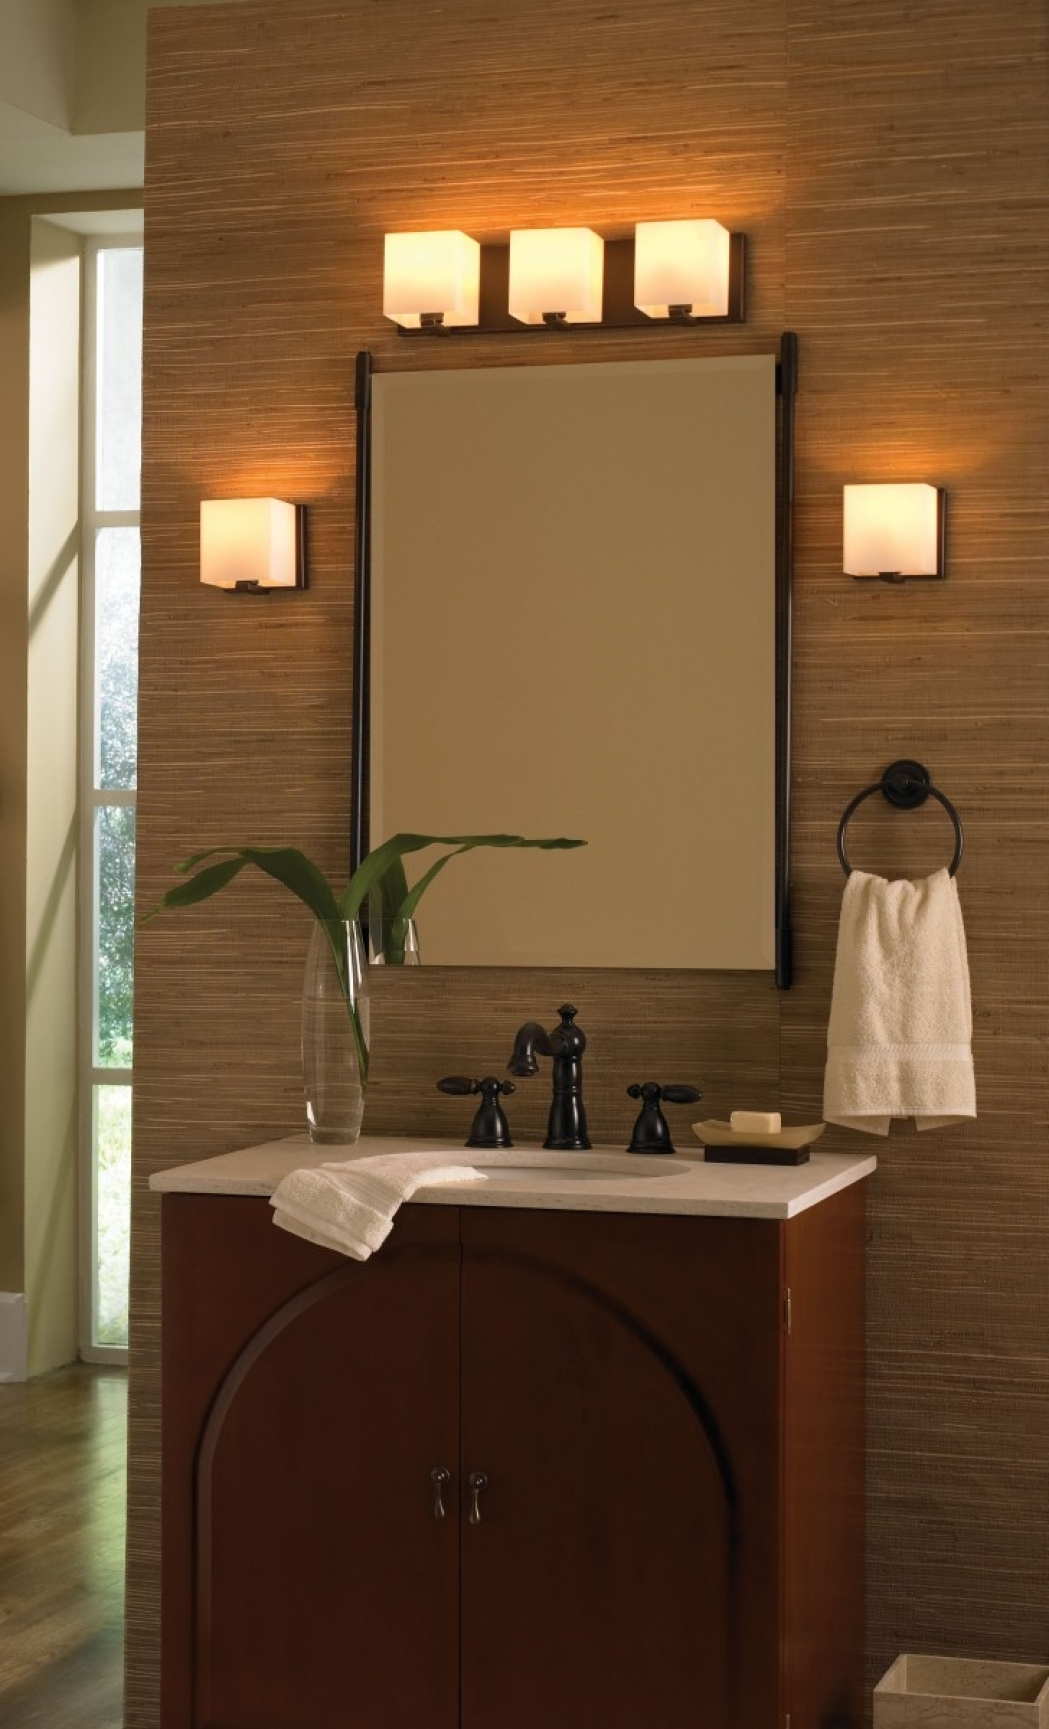 lighting for small bathrooms  wall mount sliding door hardware small kitchen design with island - Homez.biz